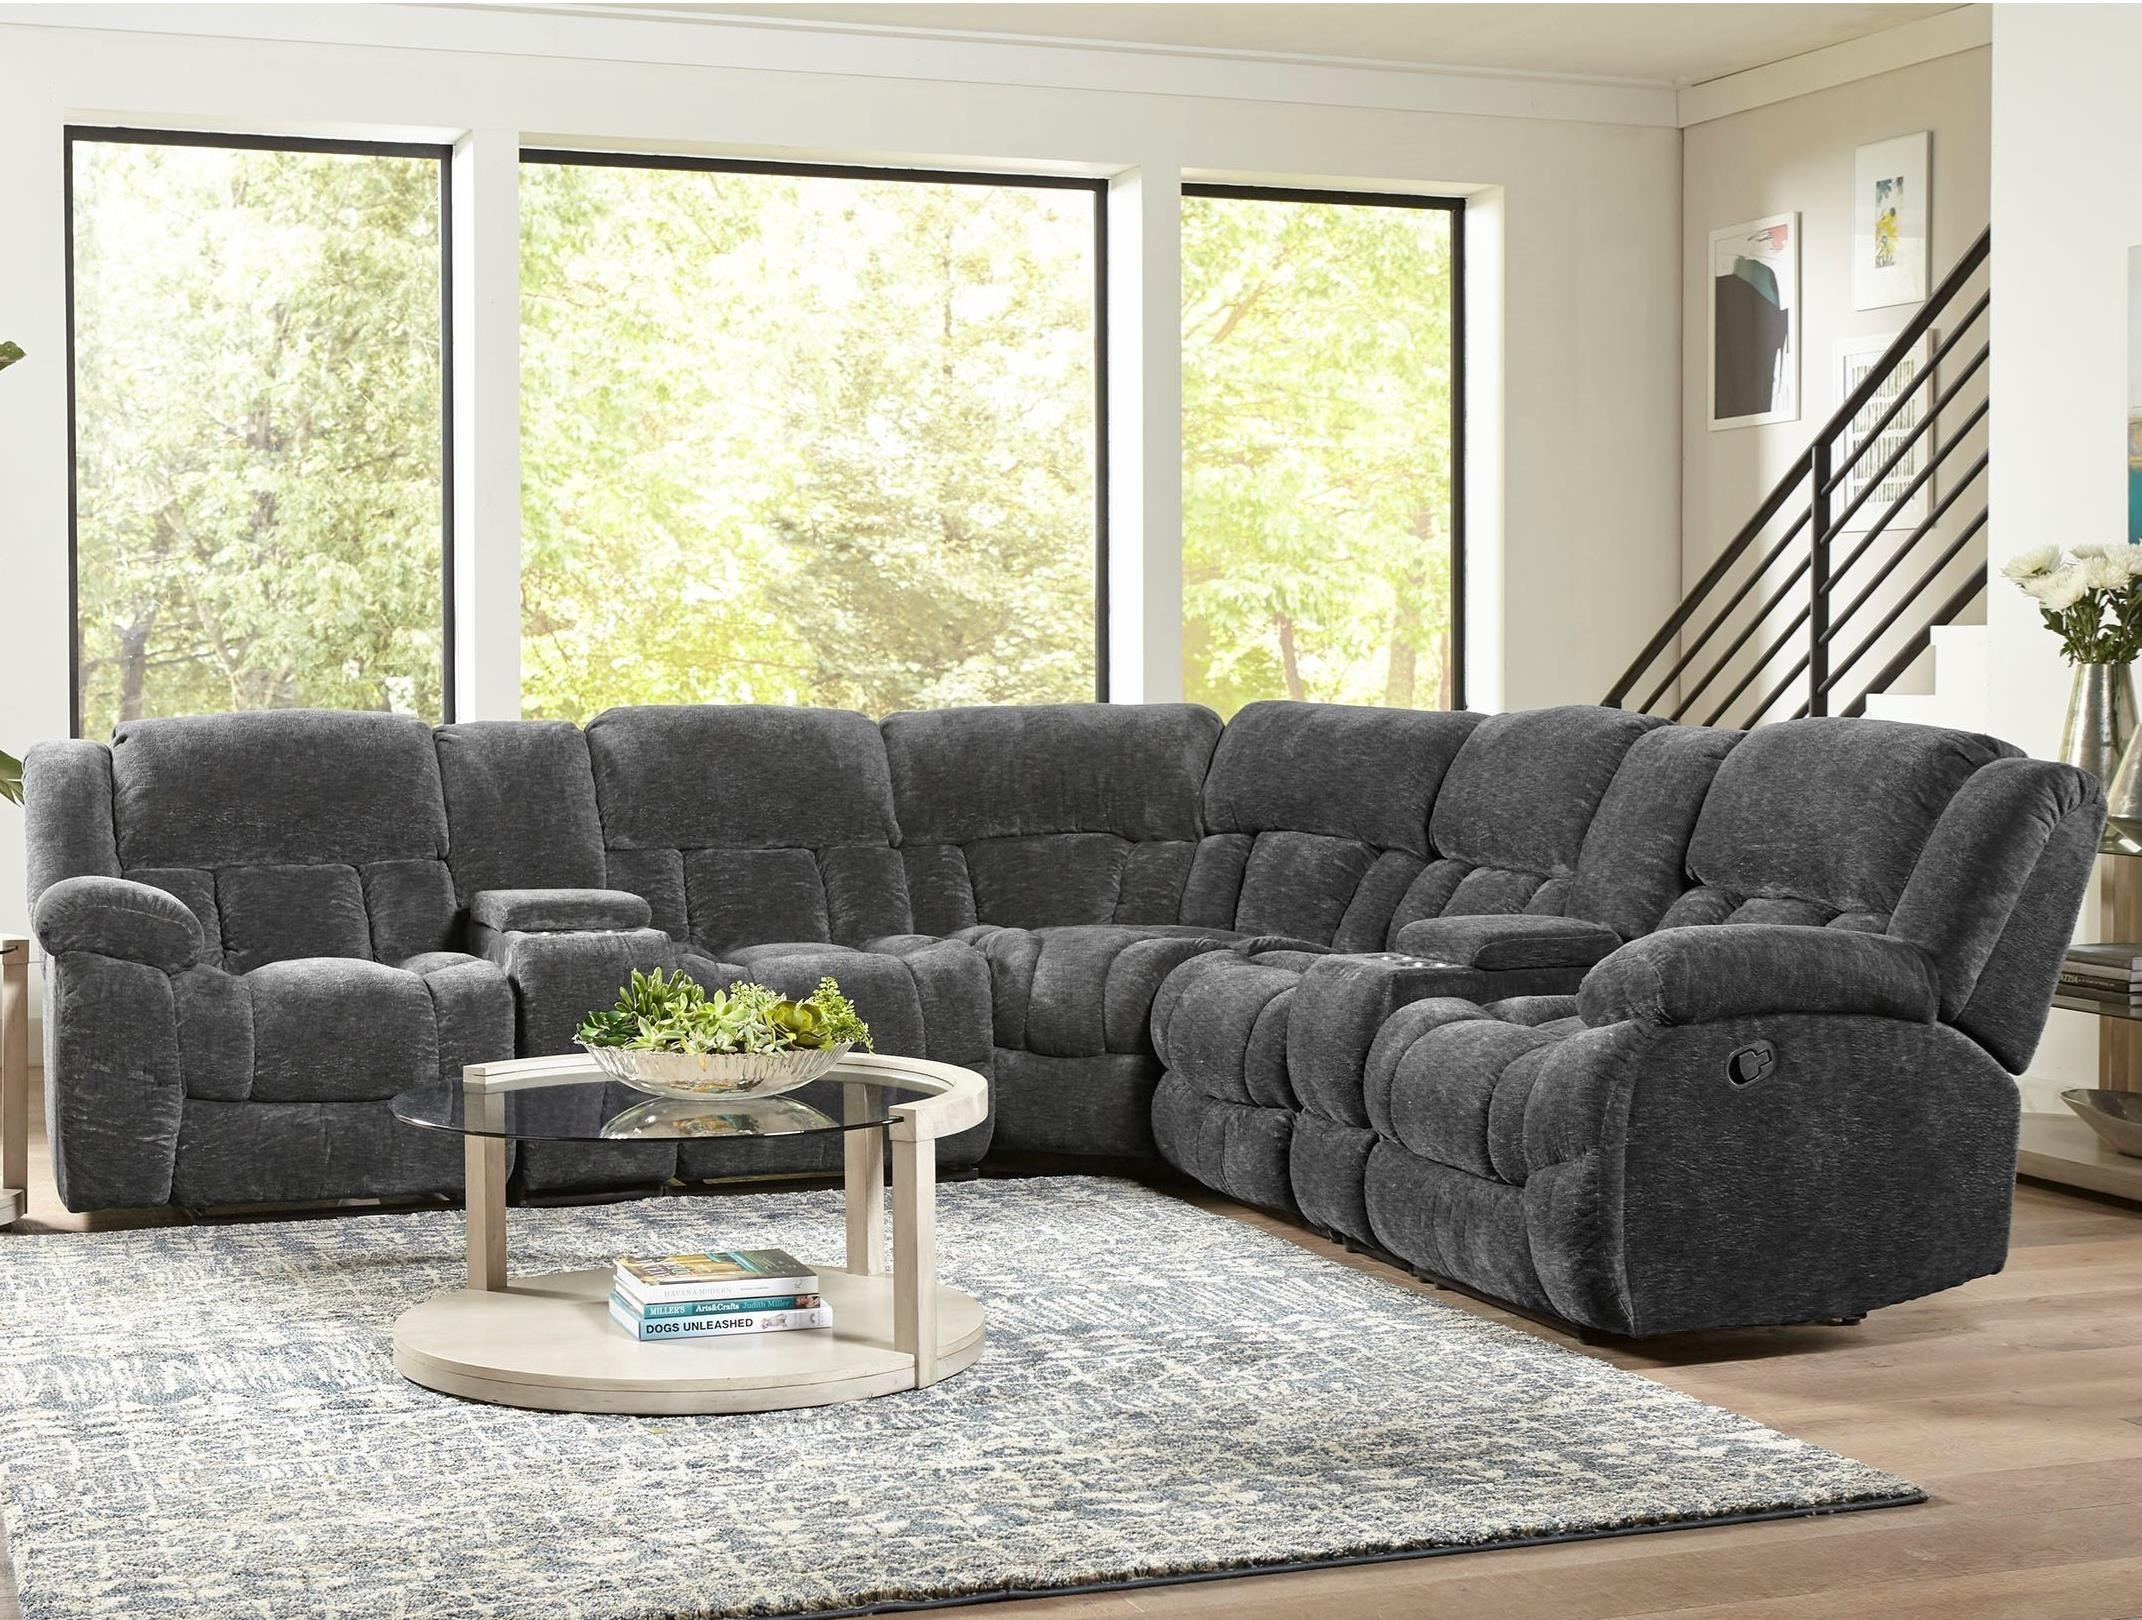 Incroyable Standard Furniture Seymore Casual Seven Piece Power Reclining Sectional Sofa  With Four Cupholders